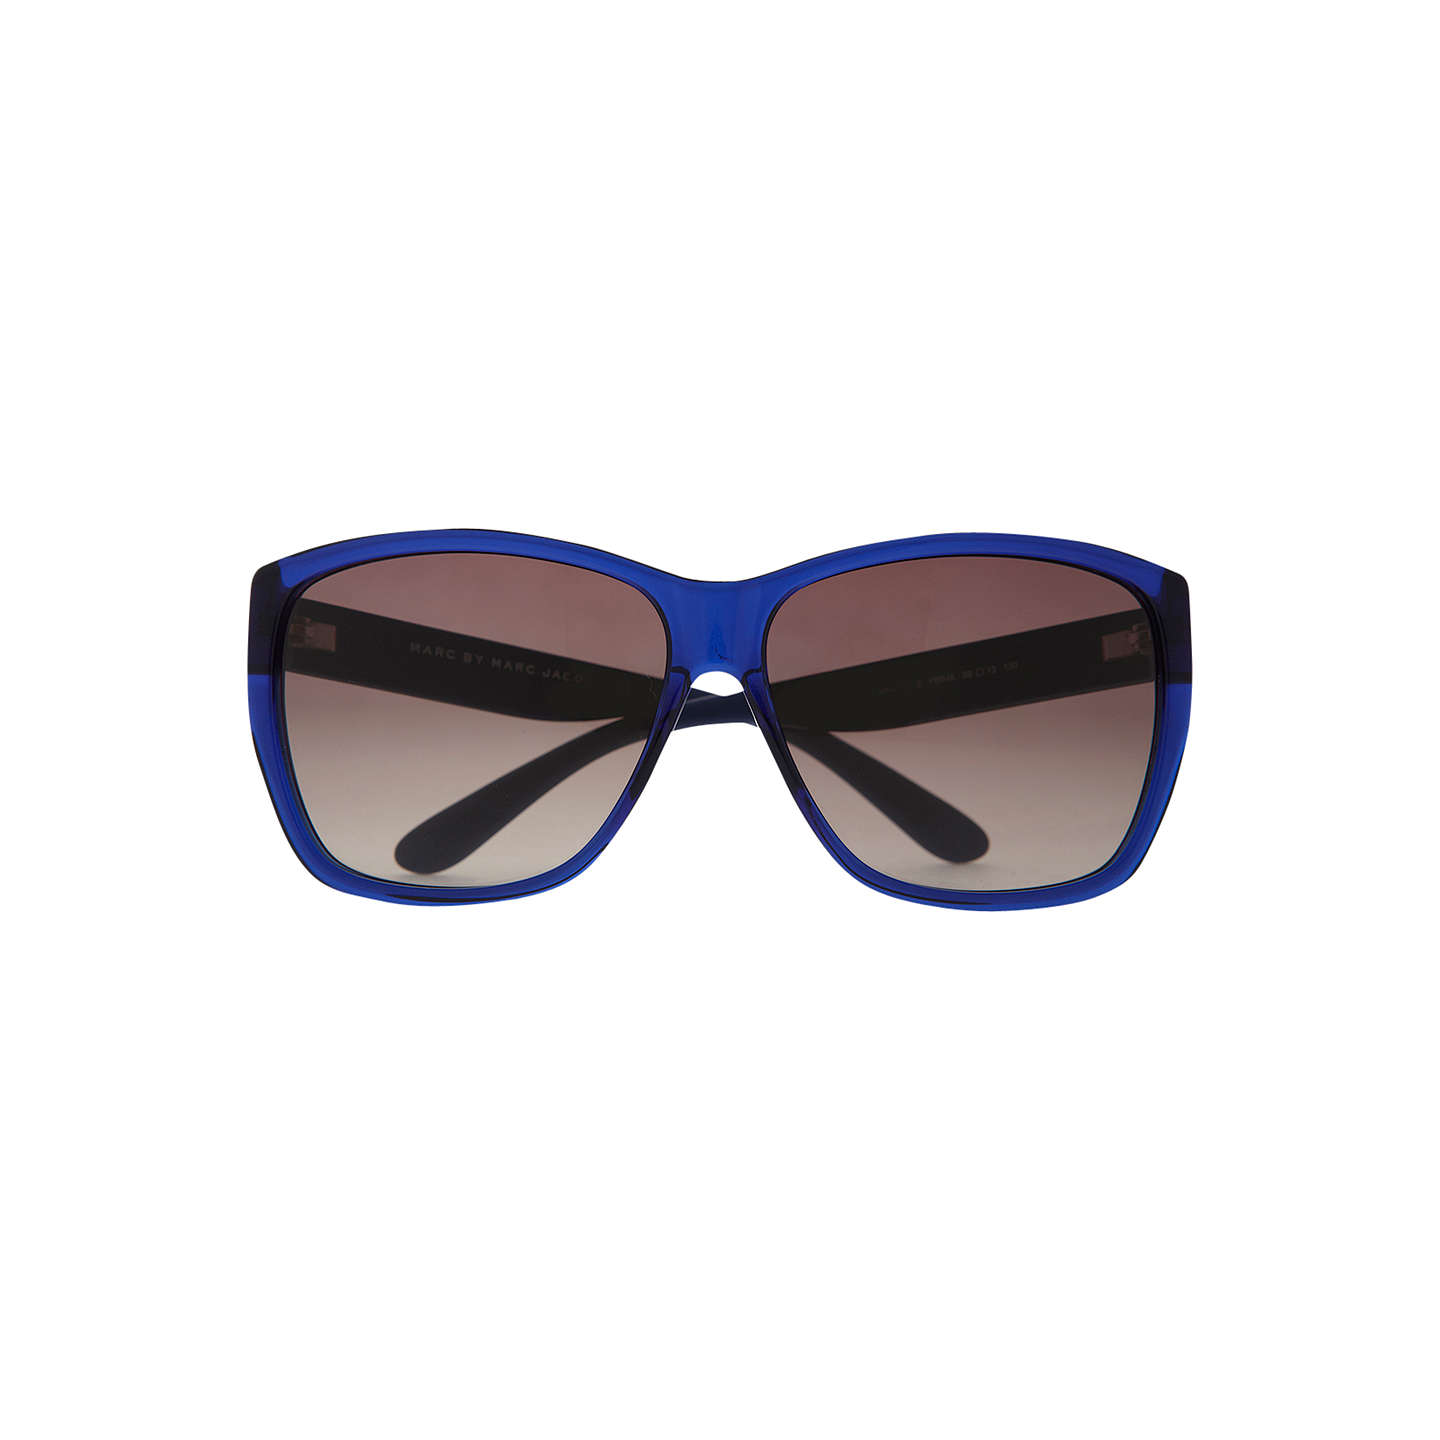 BuyMarc by Marc Jacobs MMJ315/S Square Sunglasses, Blue Online at johnlewis.com